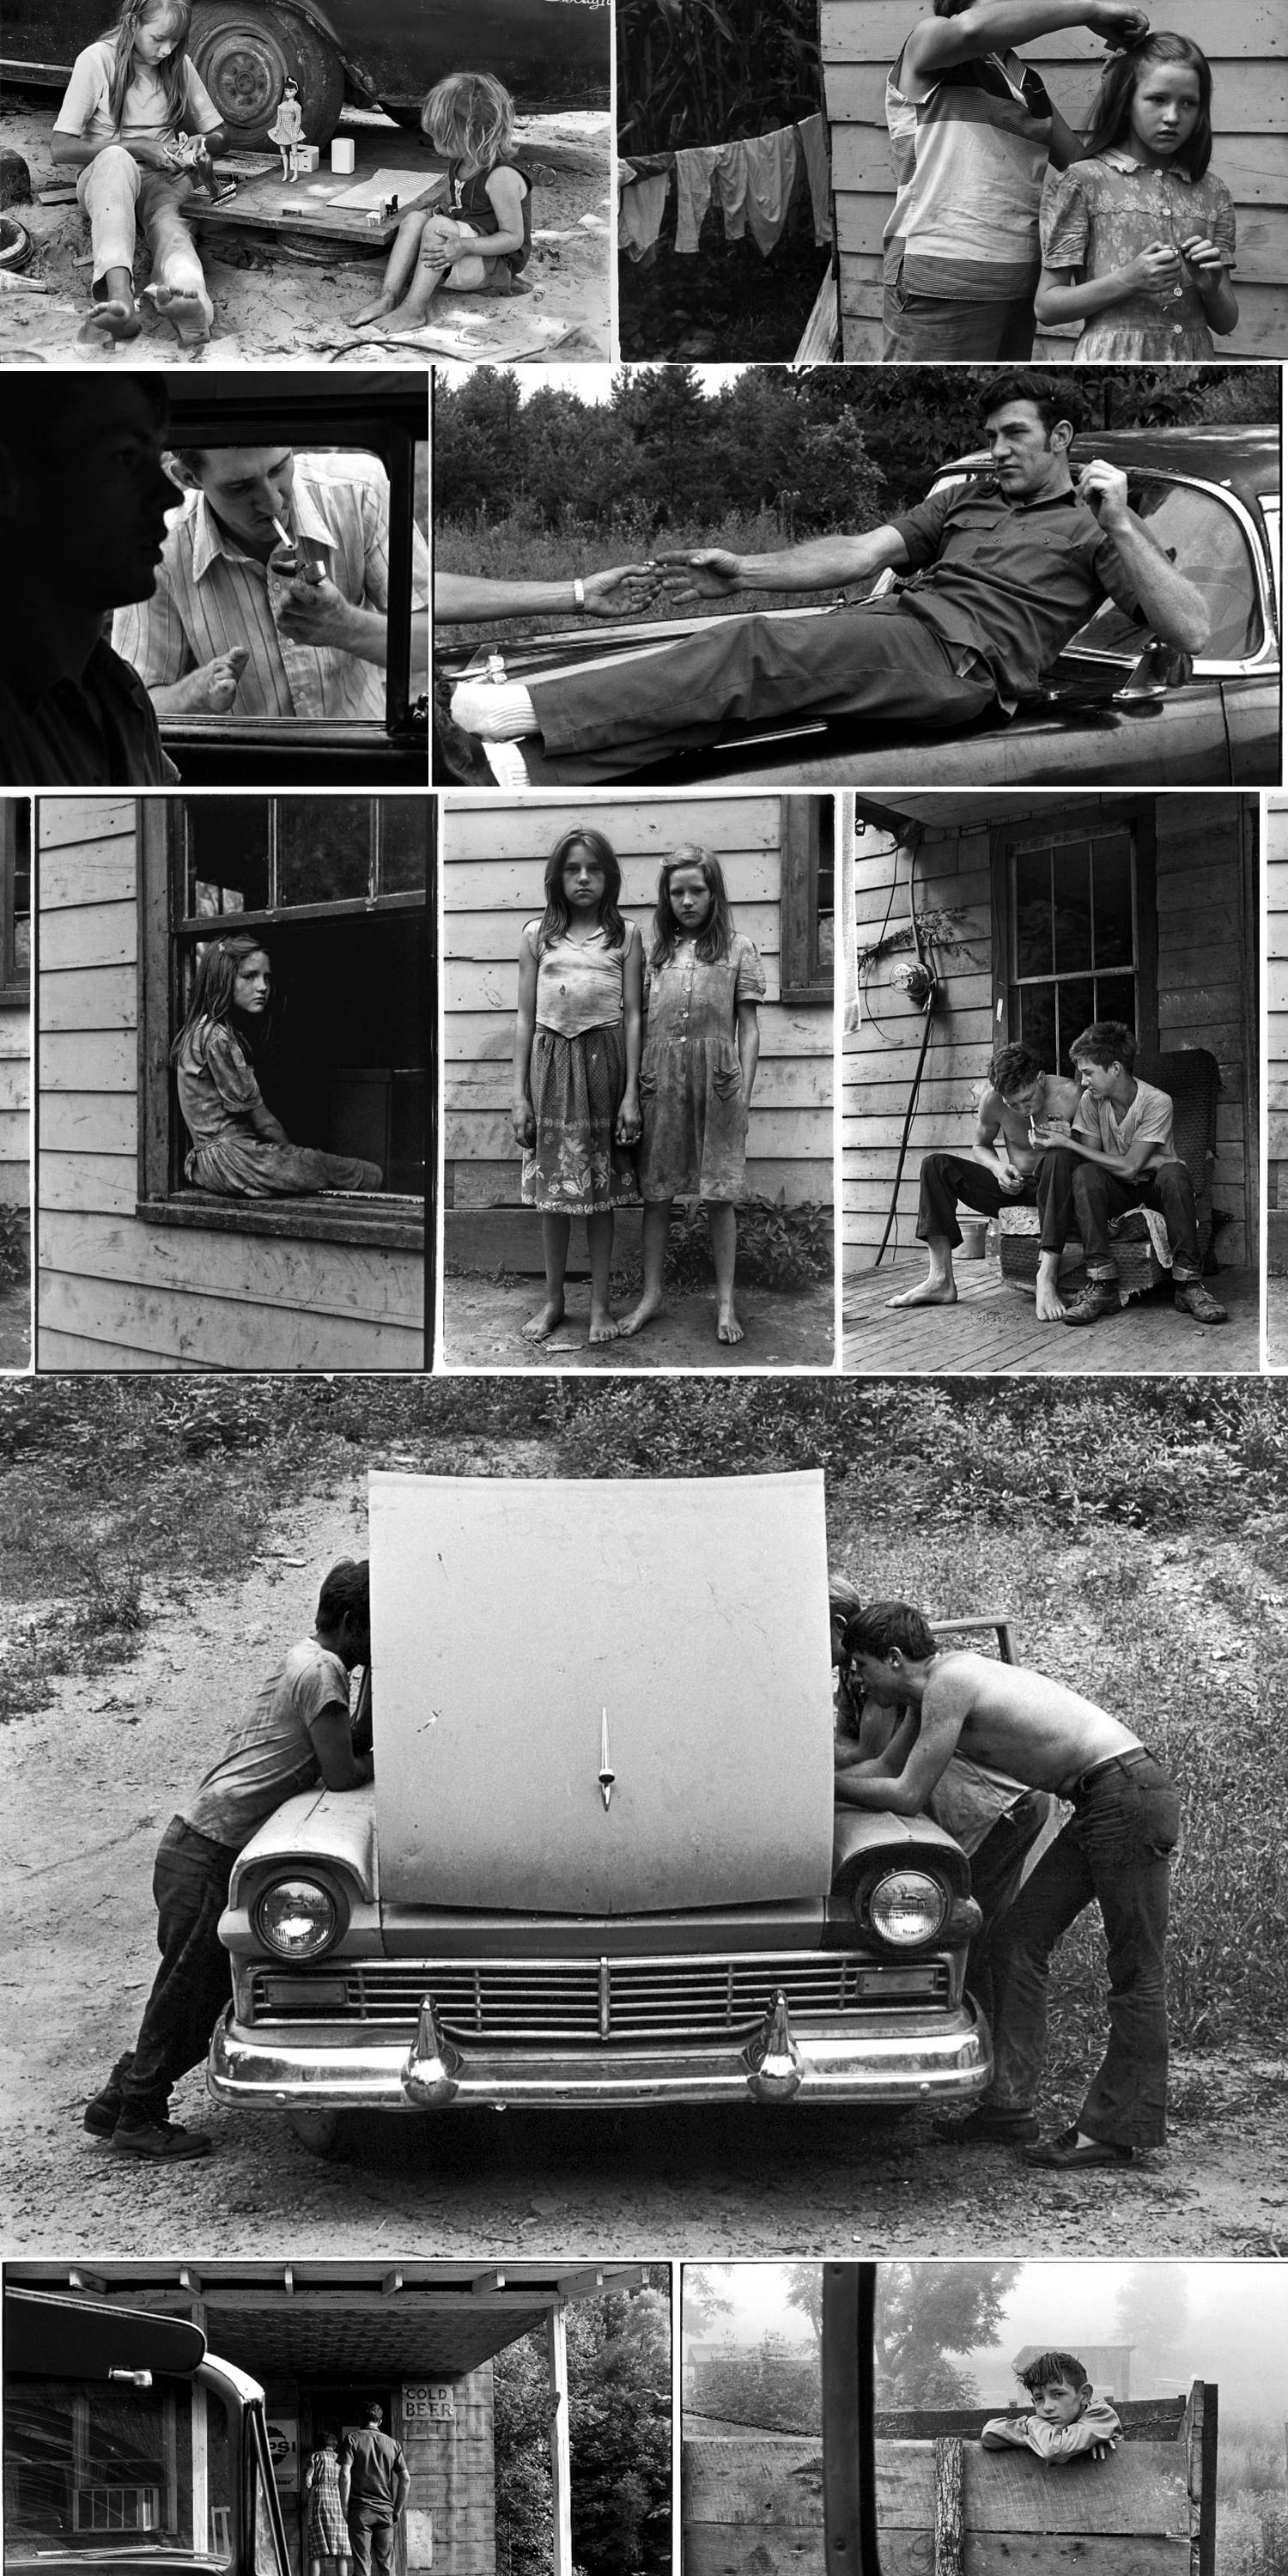 WilliamGedney